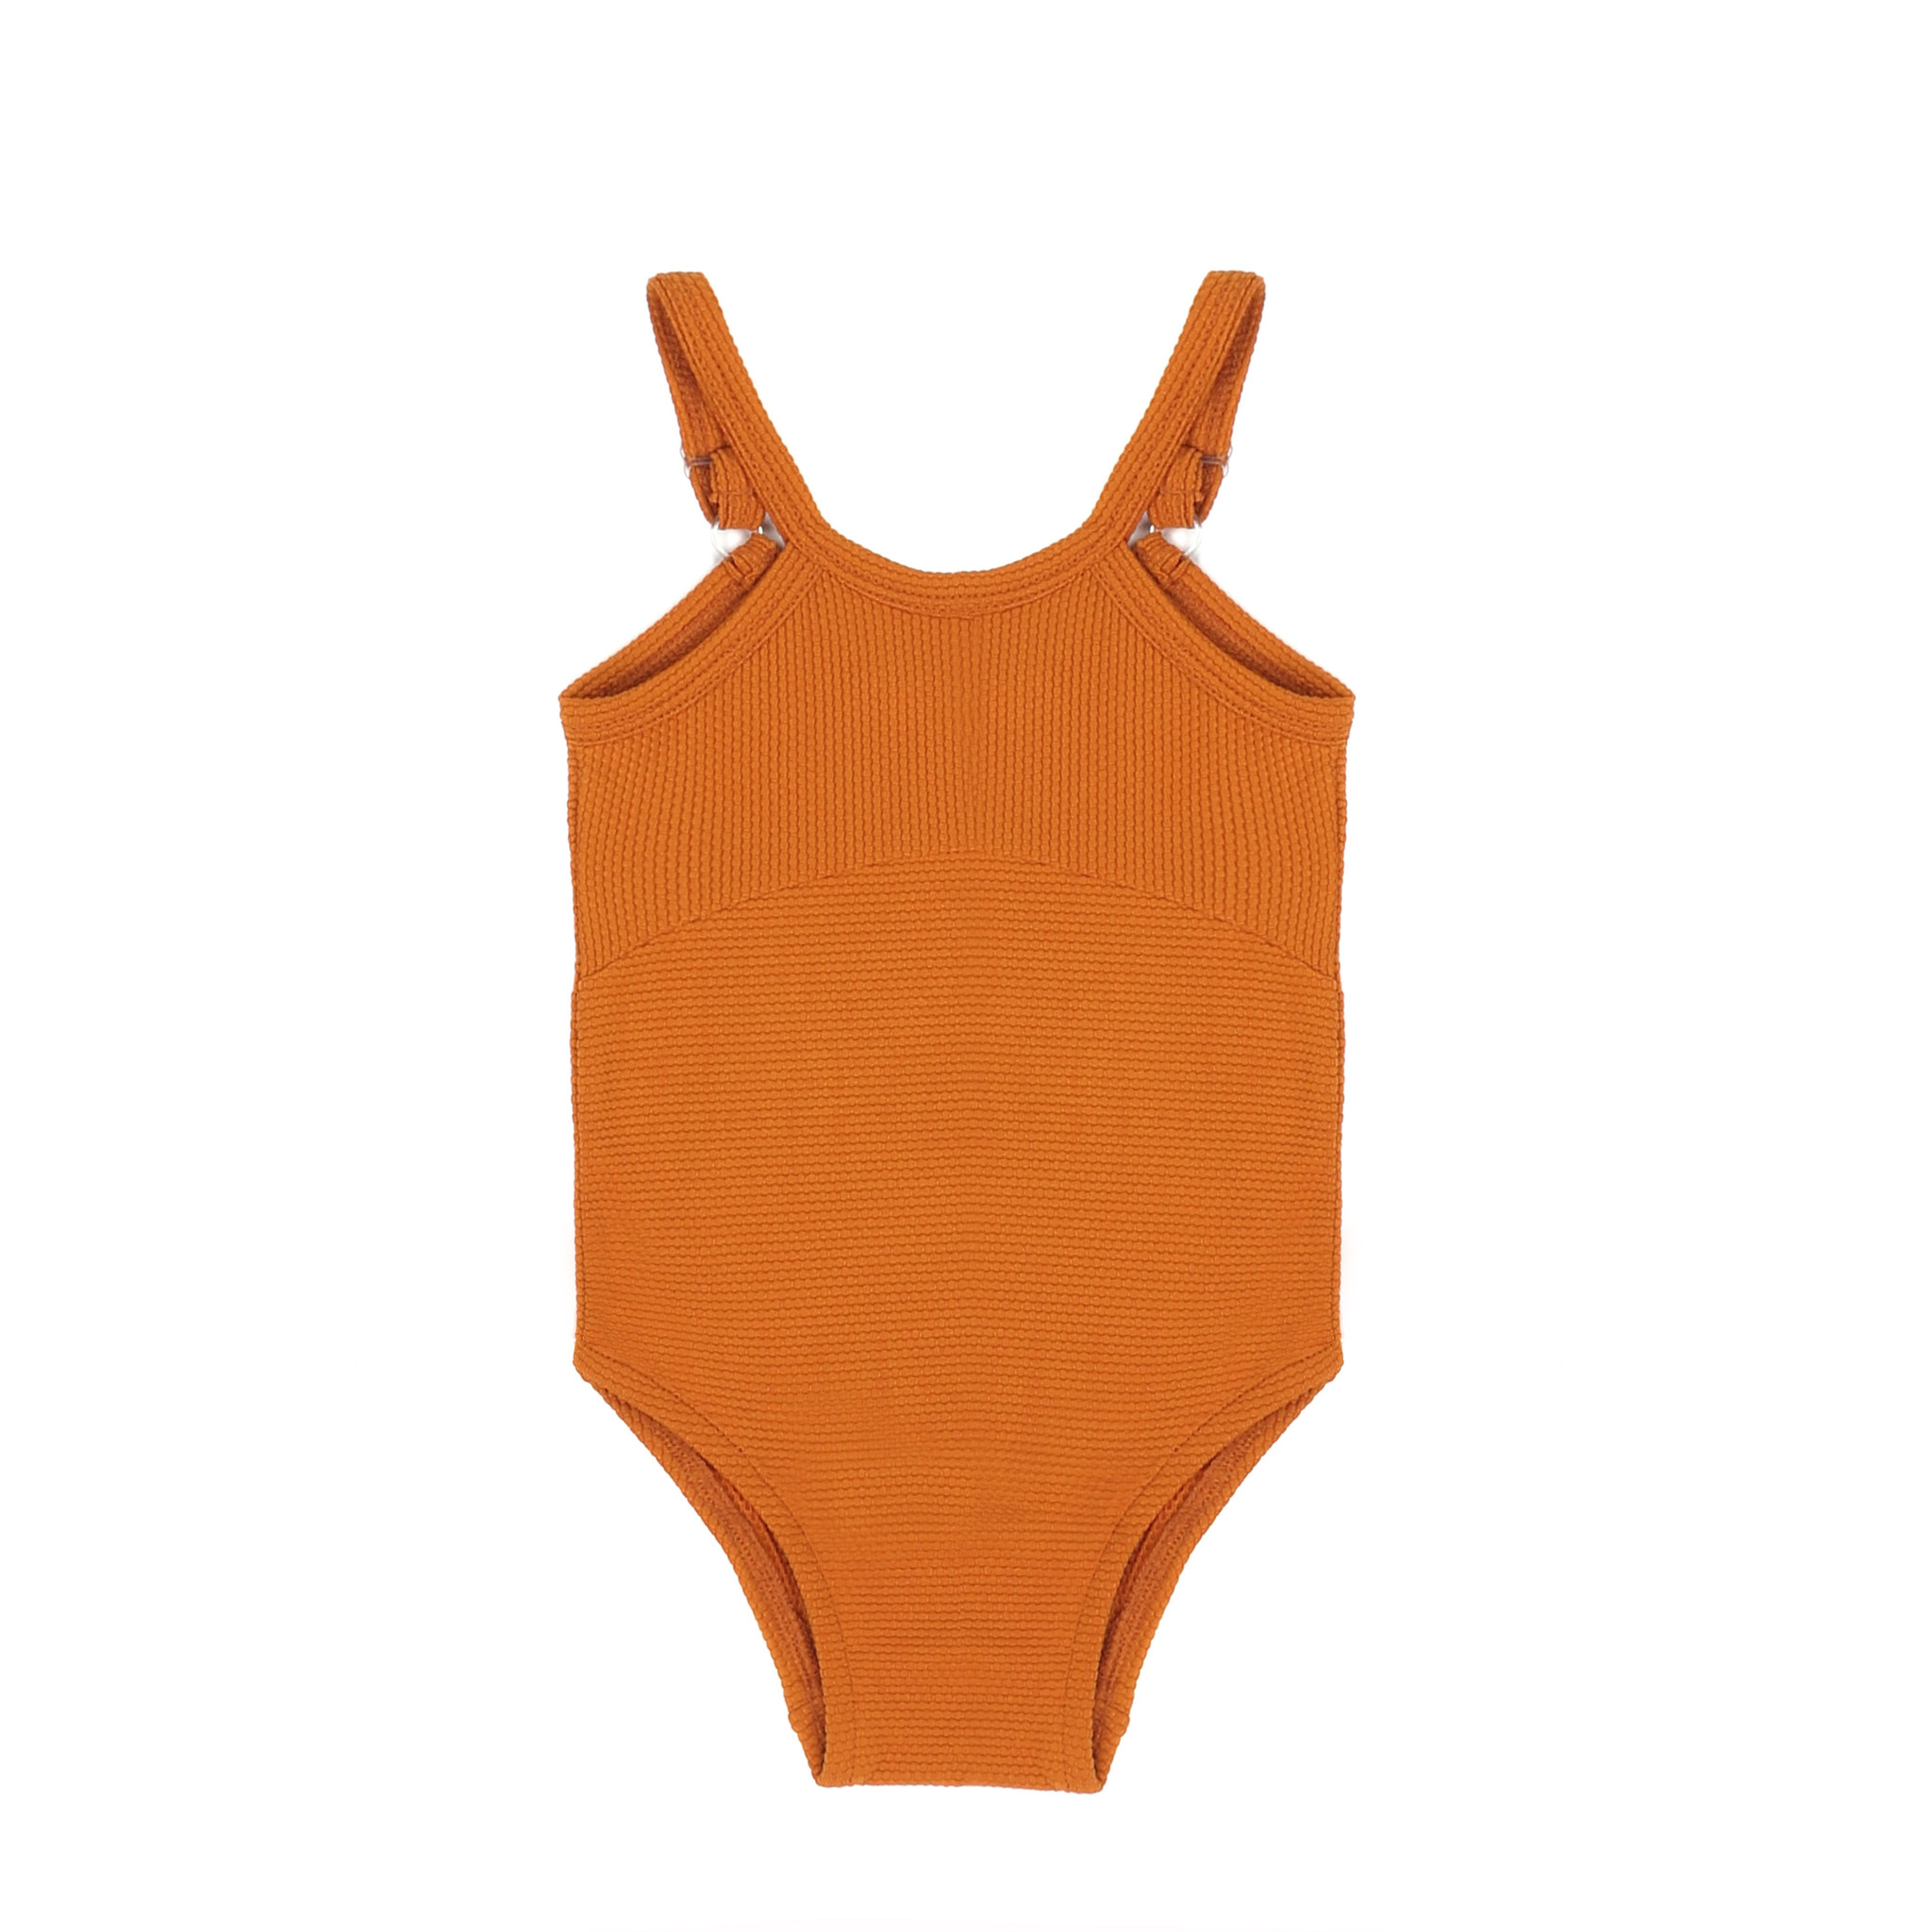 Swimsuit - Tangerine-1